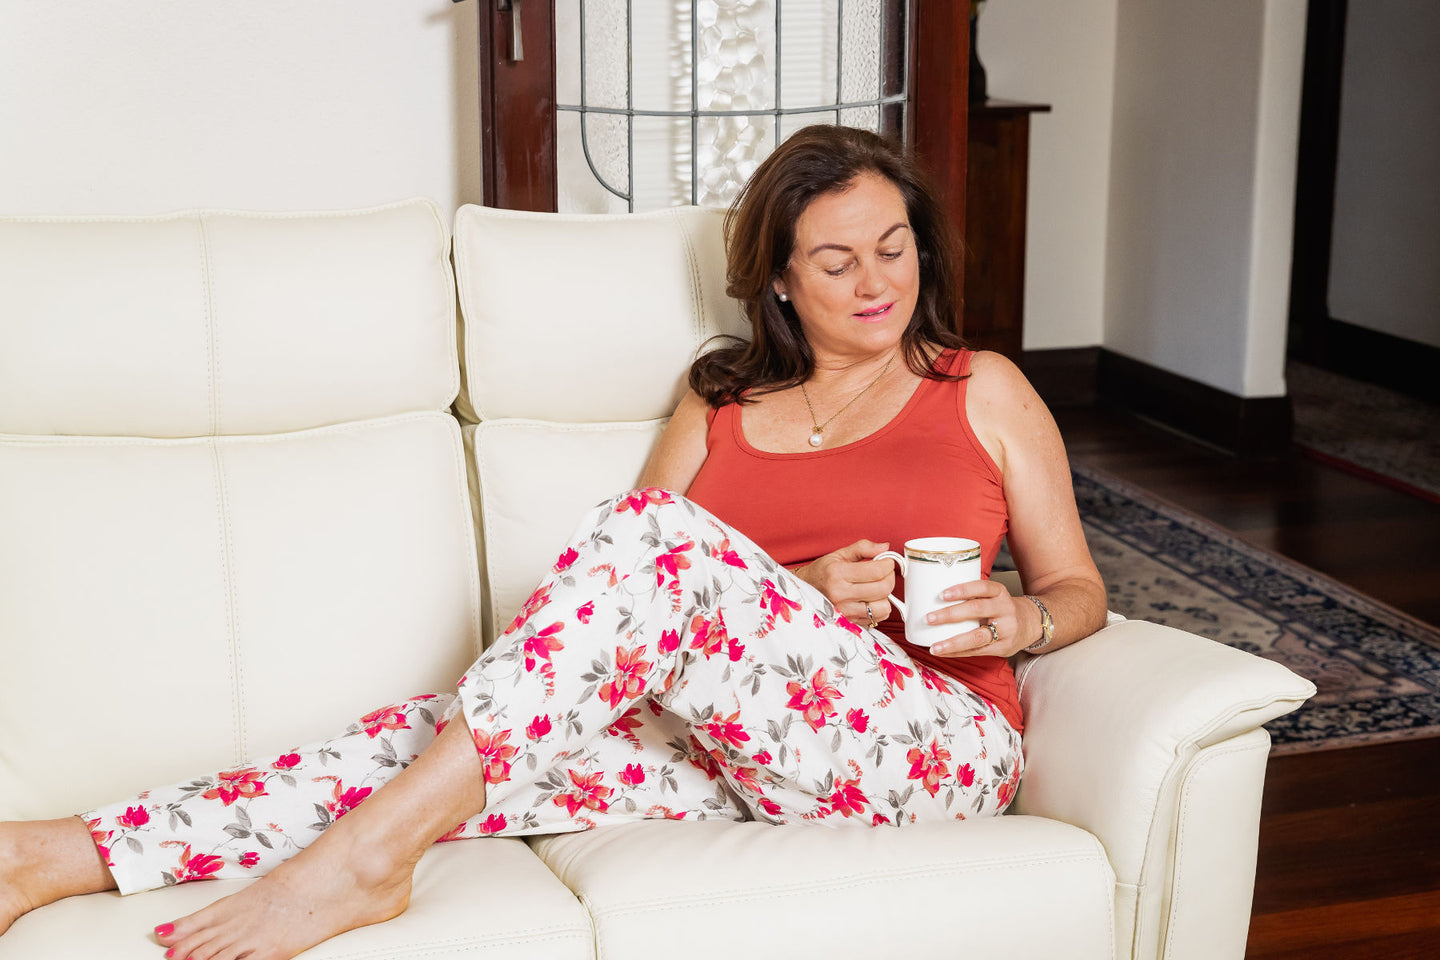 The Rheta floral cotton pyjama pants are full length and made with an elastic soft waist and drawstring.  The pants are perfect for lounging around the house and sleeping in.  The bamboo burnt orange singlet goes perfectly with the pyjama pants to make a set.